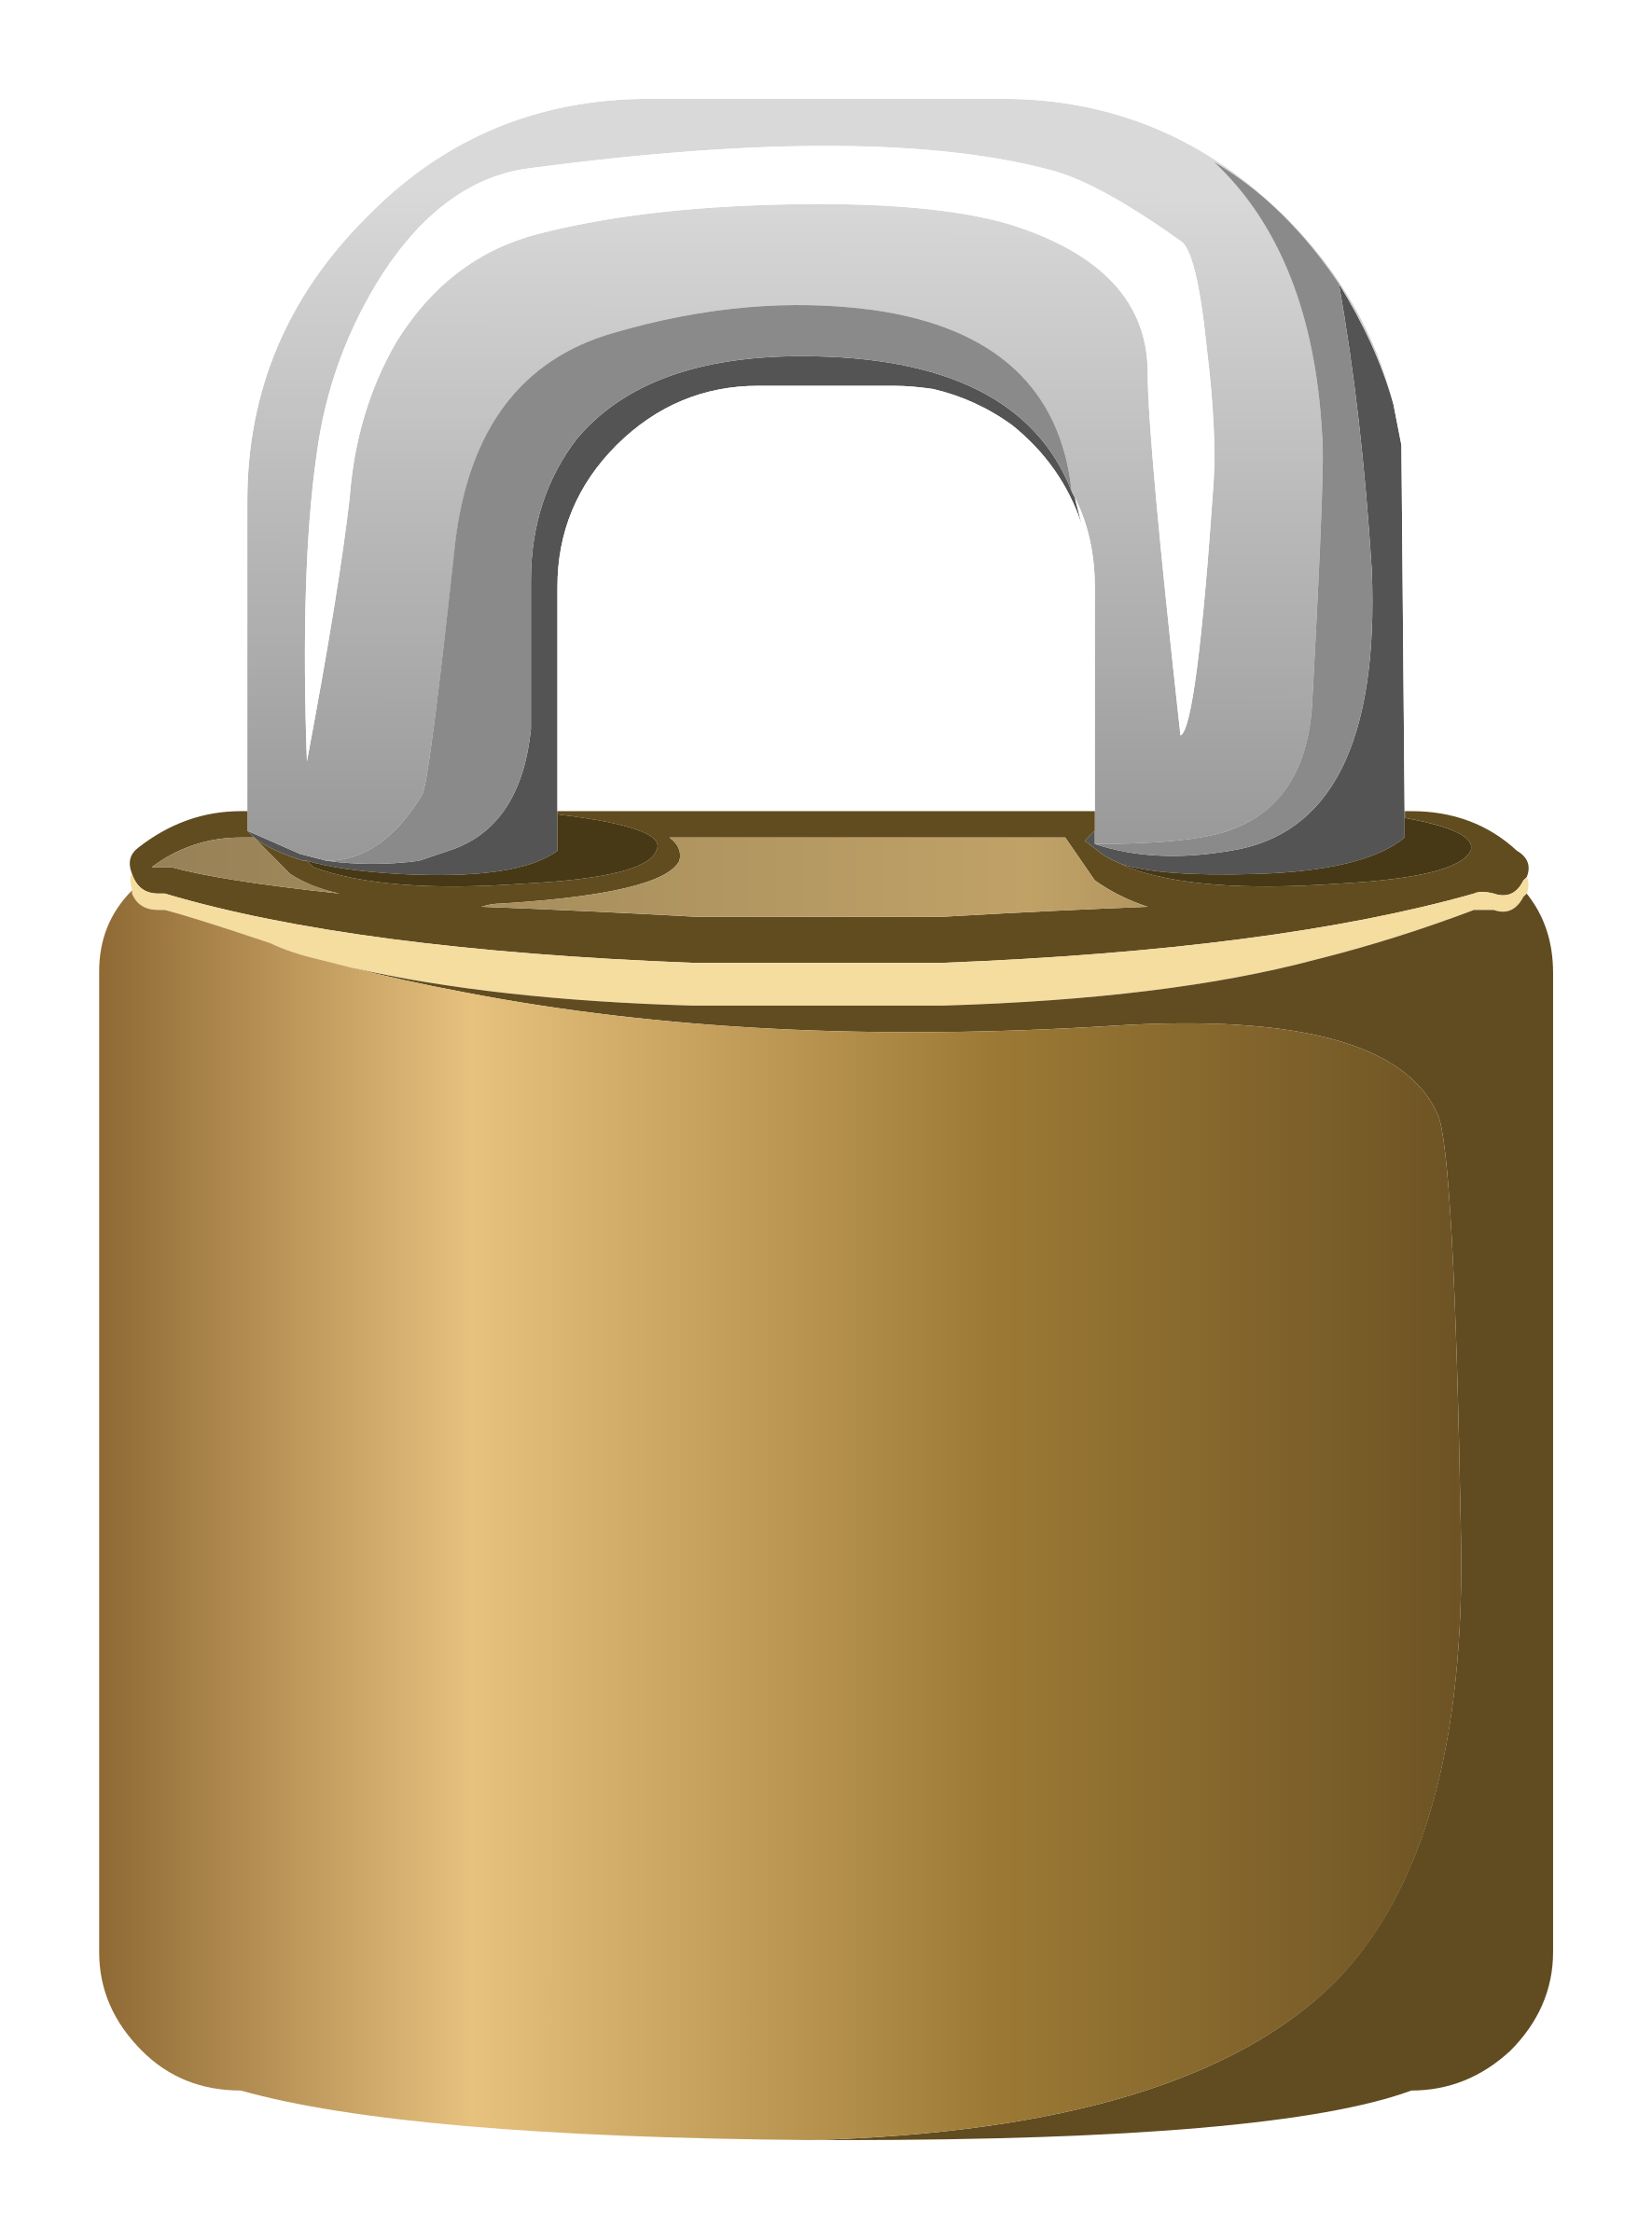 Lock clipart game Game Lock Crown Misc Clipart